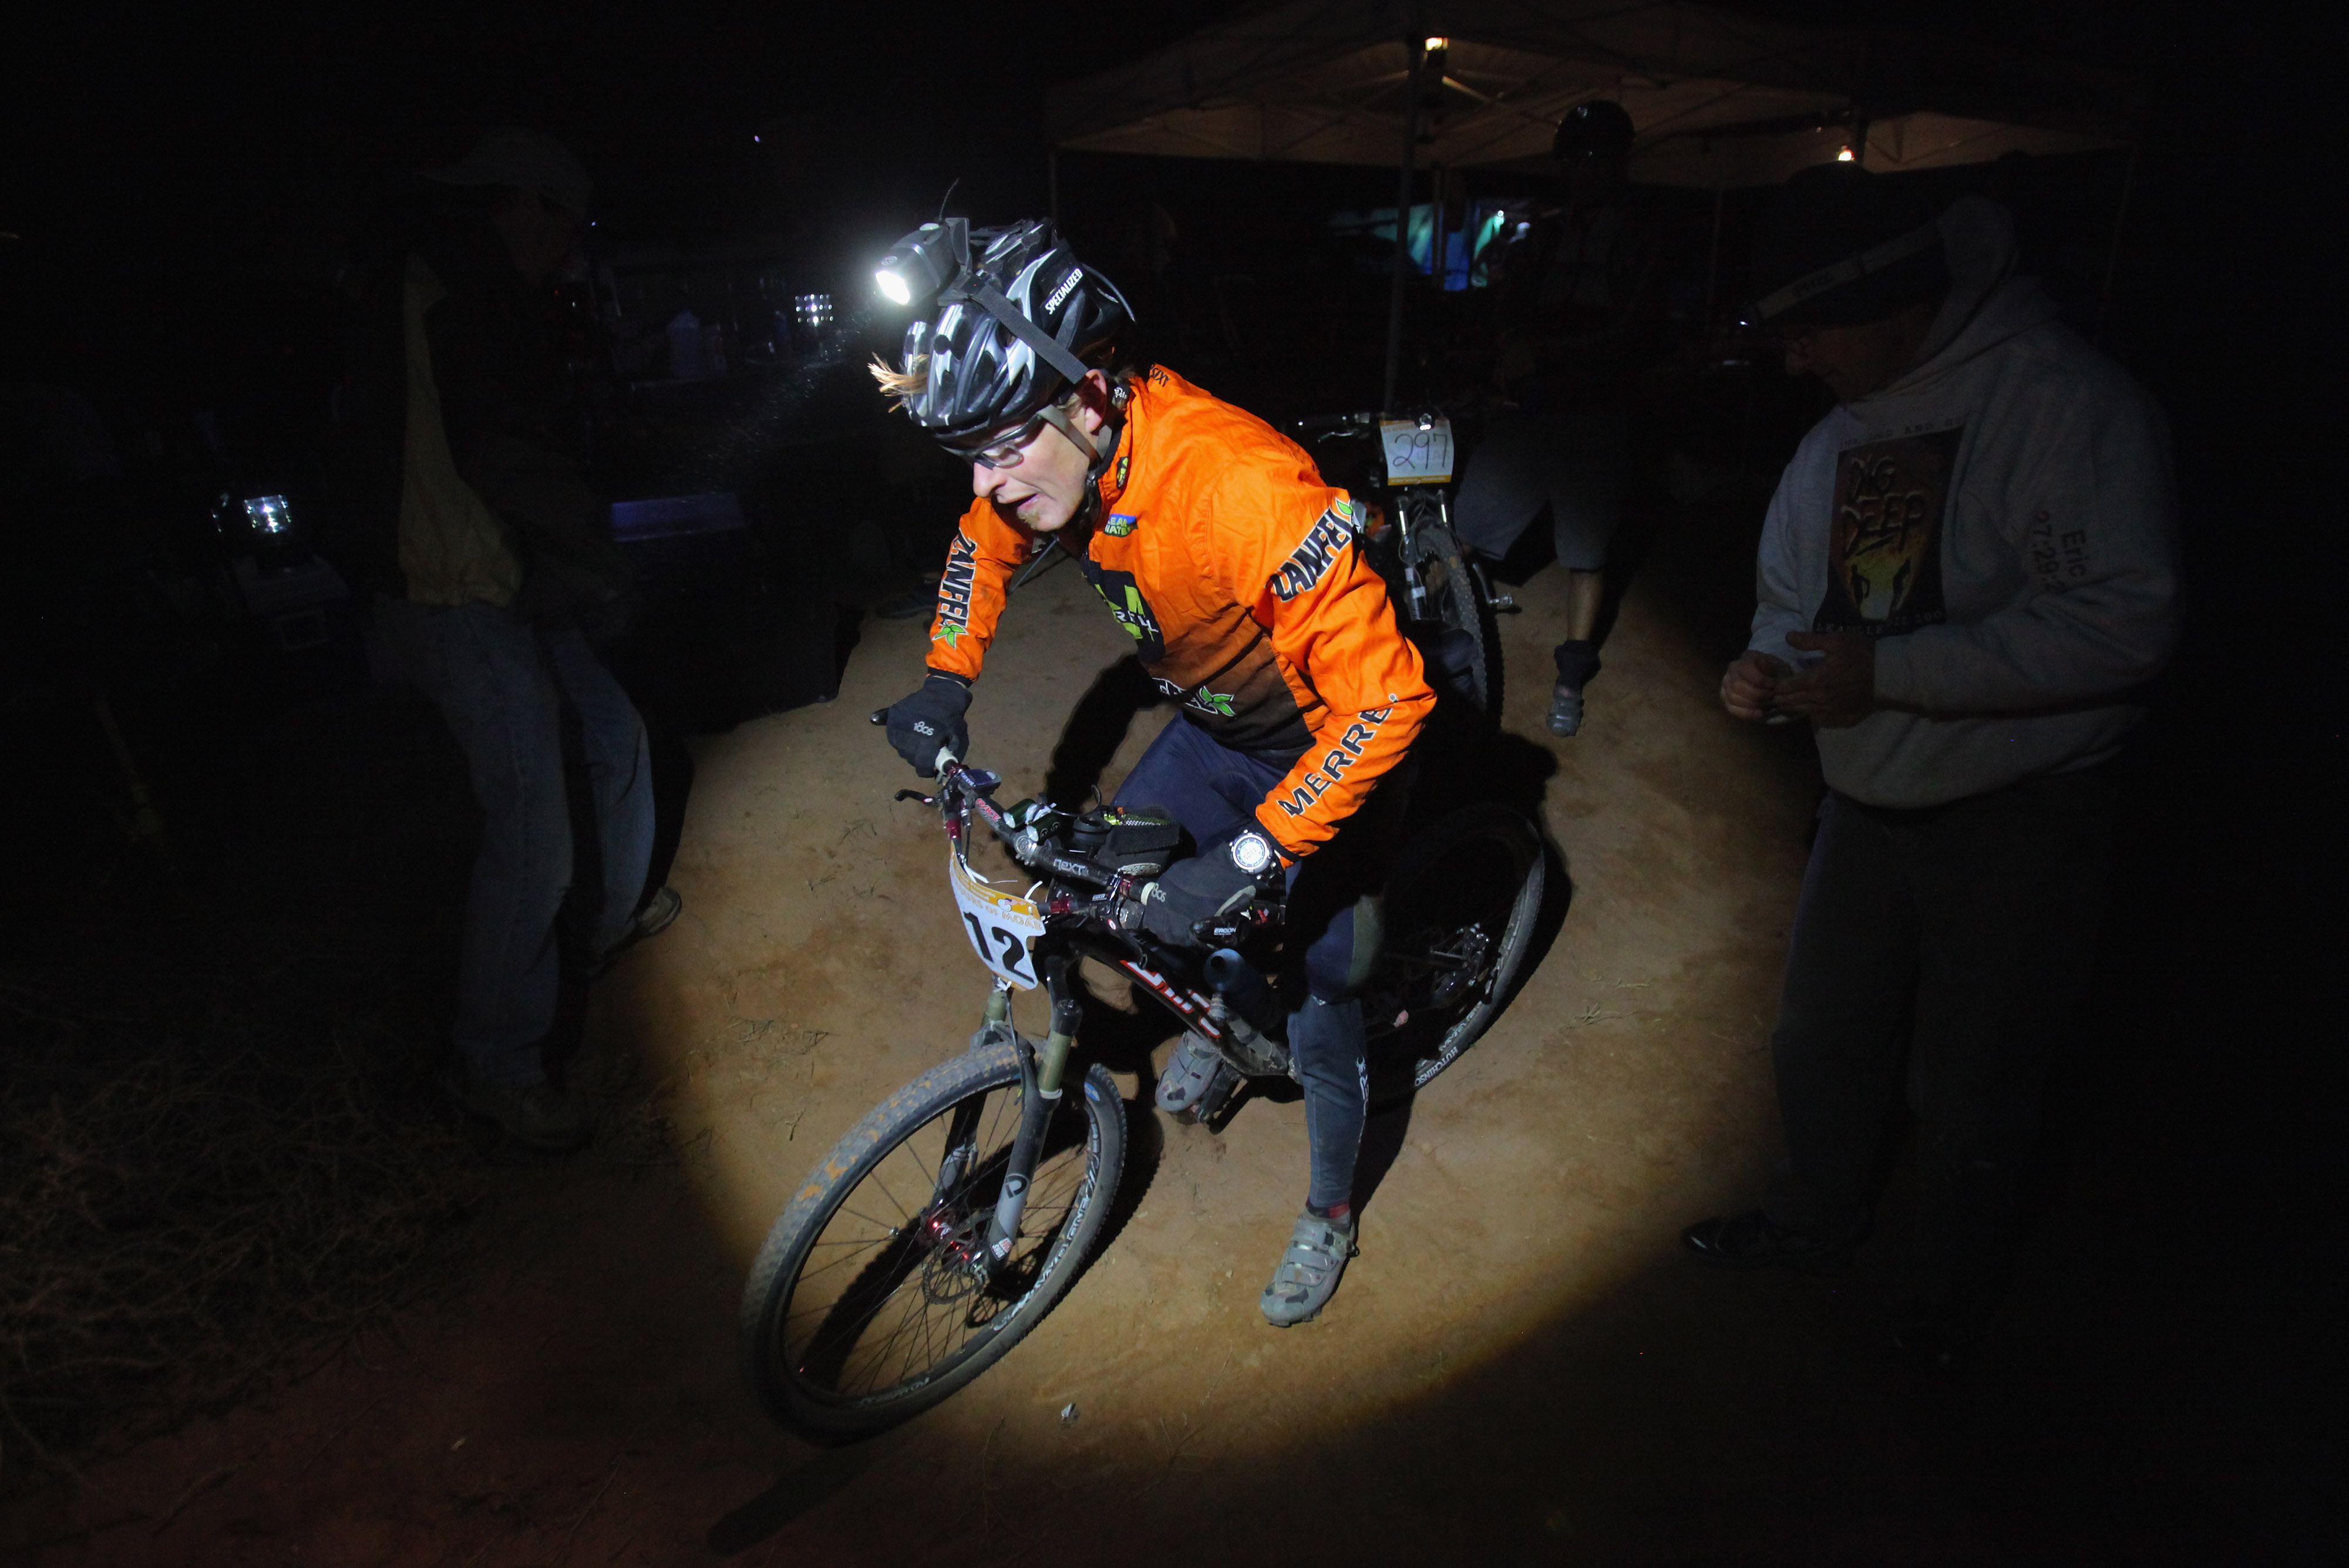 Solo men's rider Travis Macy of Evergreen, Colorado leaves his support area in the midnight hour enroute to finishing seventh place in the 24 Hours of Moab Mountain Bike Race on Oct. 9, 2010, in Moab, Utah. More than 1000 mountain bikers are estimated to complete more than 7000 laps on the 14.9 mile course.  (Photo by Doug Pensinger/Getty Images)